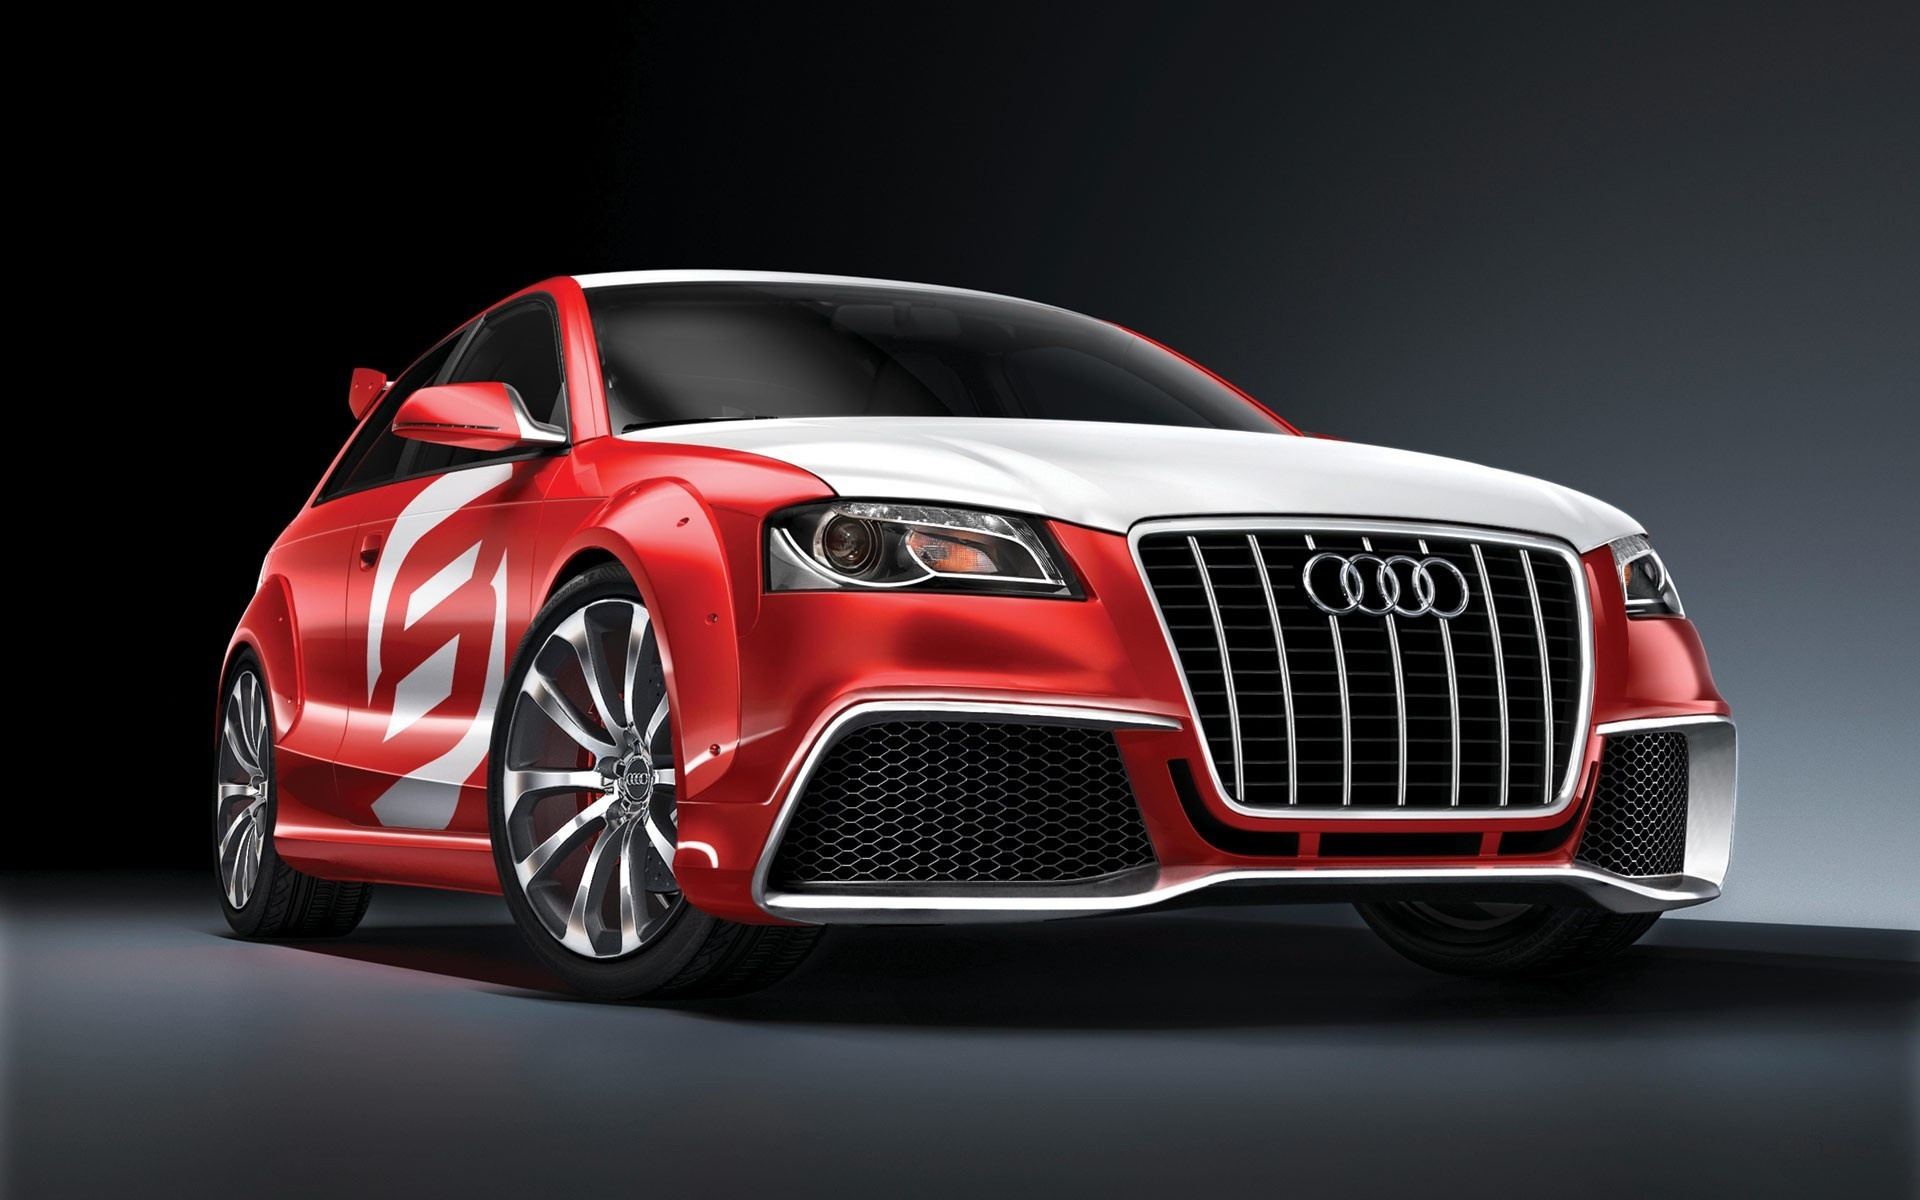 Wallpaper Cool Red Audi Car 1920x1200 Hd Picture Image